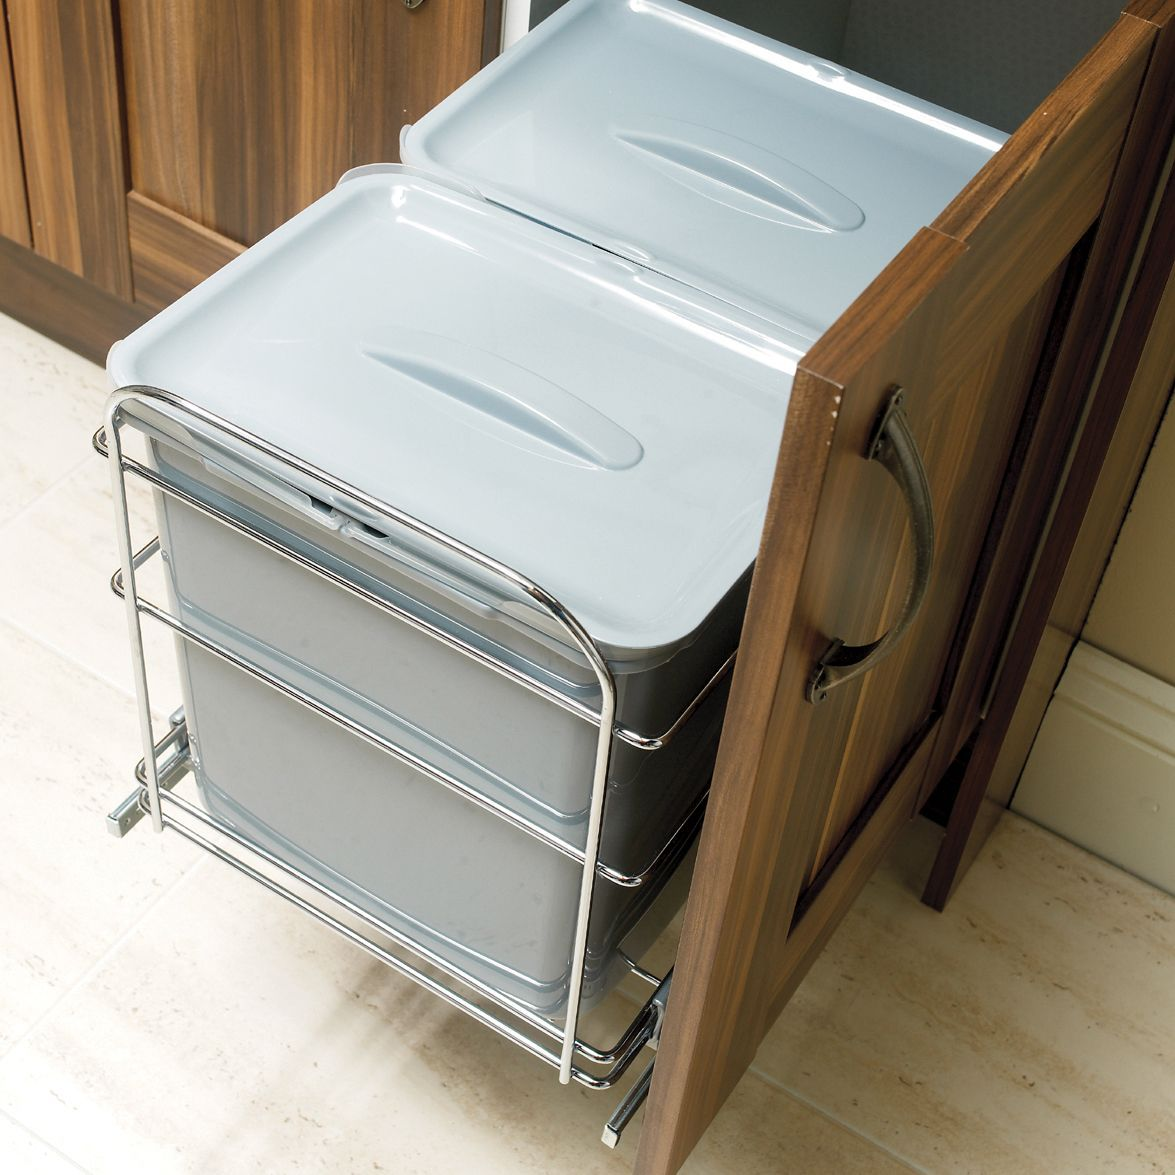 It kitchens 600mm integrated pull out kitchen bins 78l B q bathroom design service